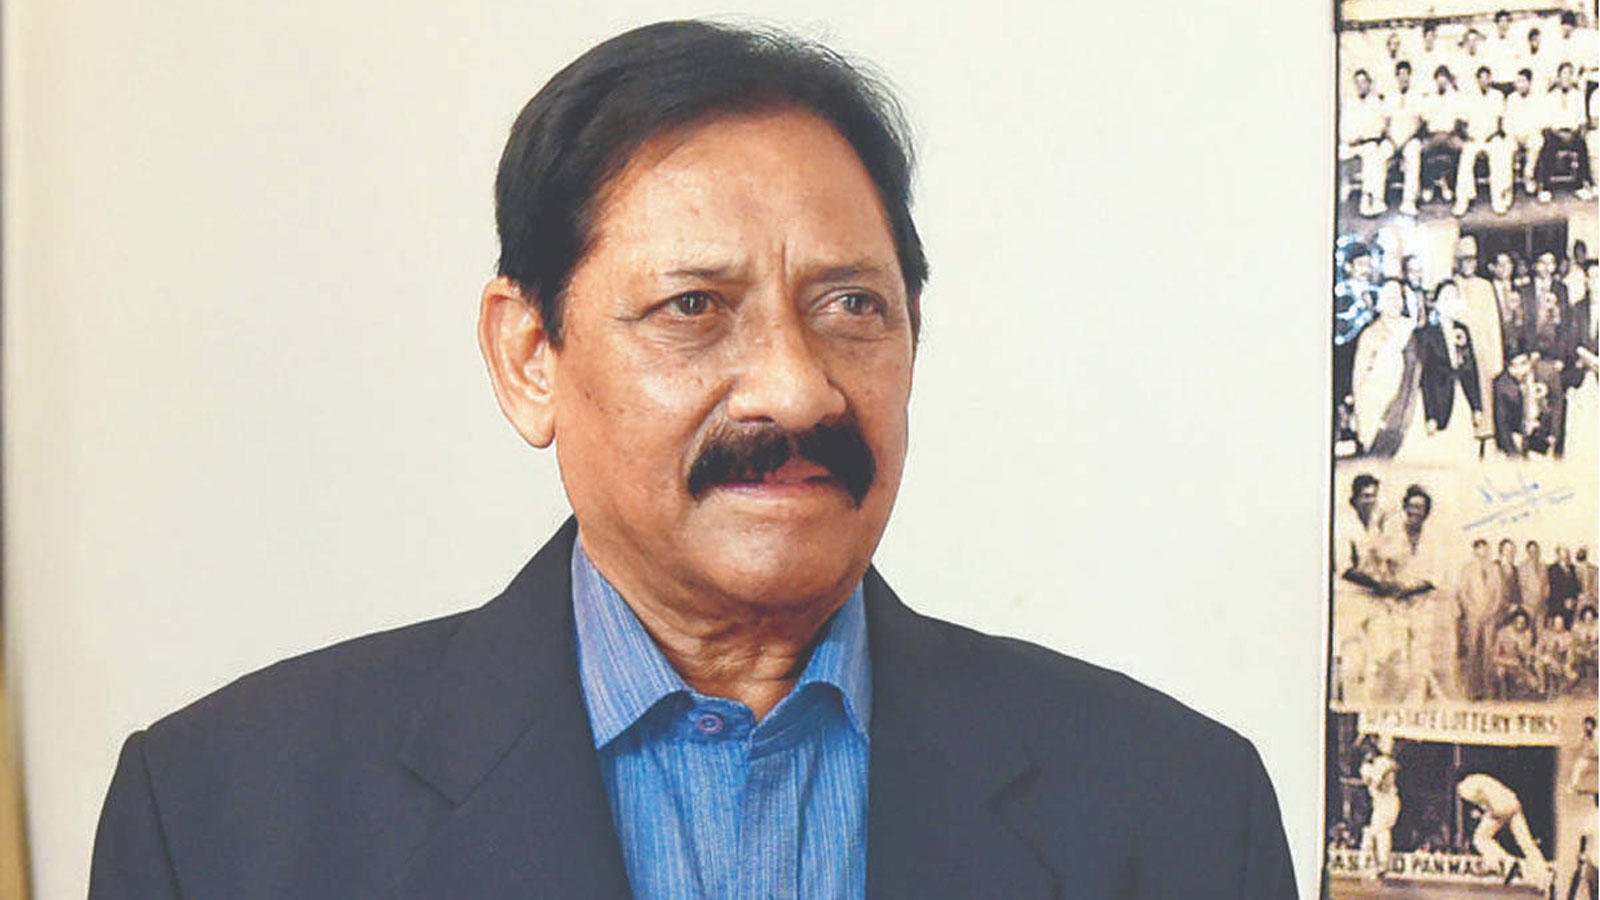 former-india-cricketer-chetan-chauhan-on-life-support-following-covid-infection